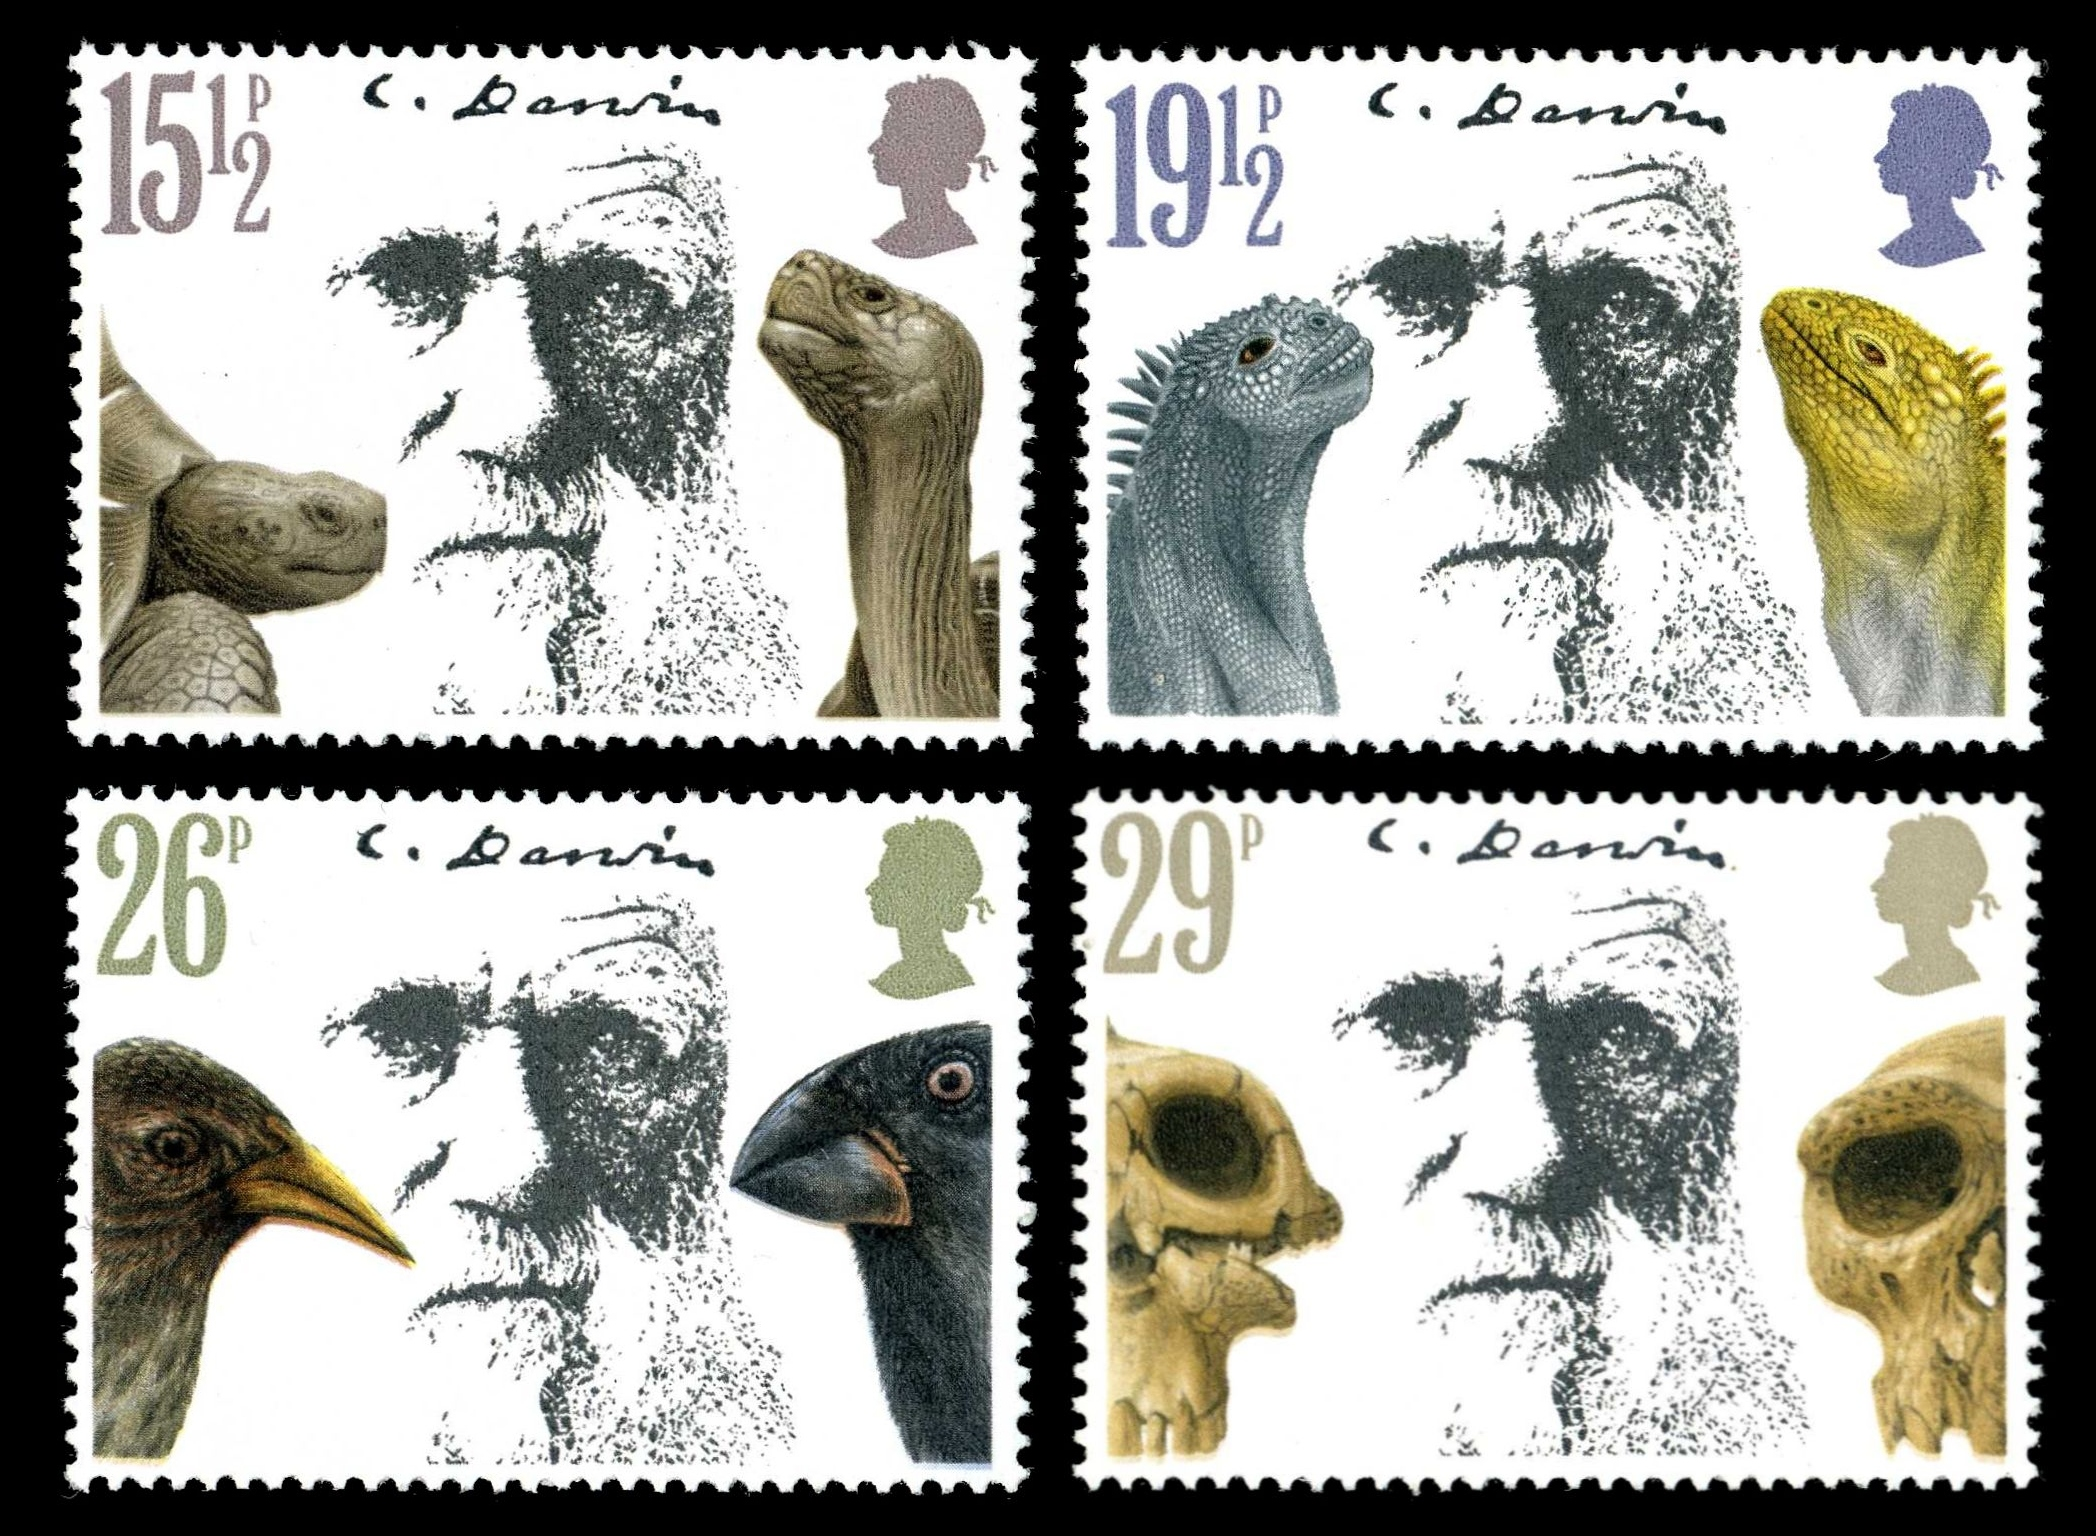 http://www.paleophilatelie.eu/images/sets/uk_1982_darwin.jpg